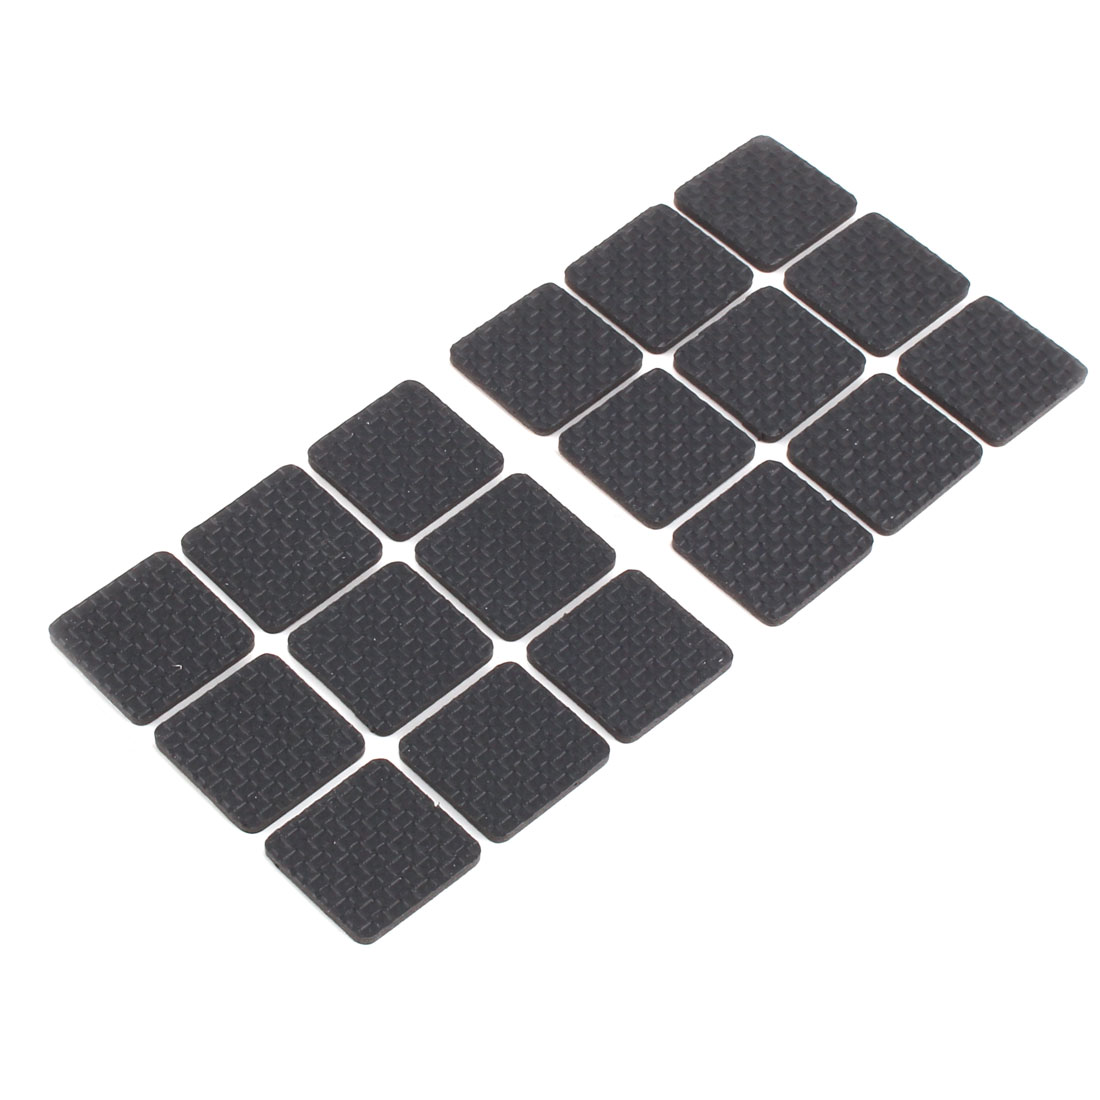 Home EVA Square Table Chair Furniture Protector Cushion Pads Mat 27 x 27mm 18pcs